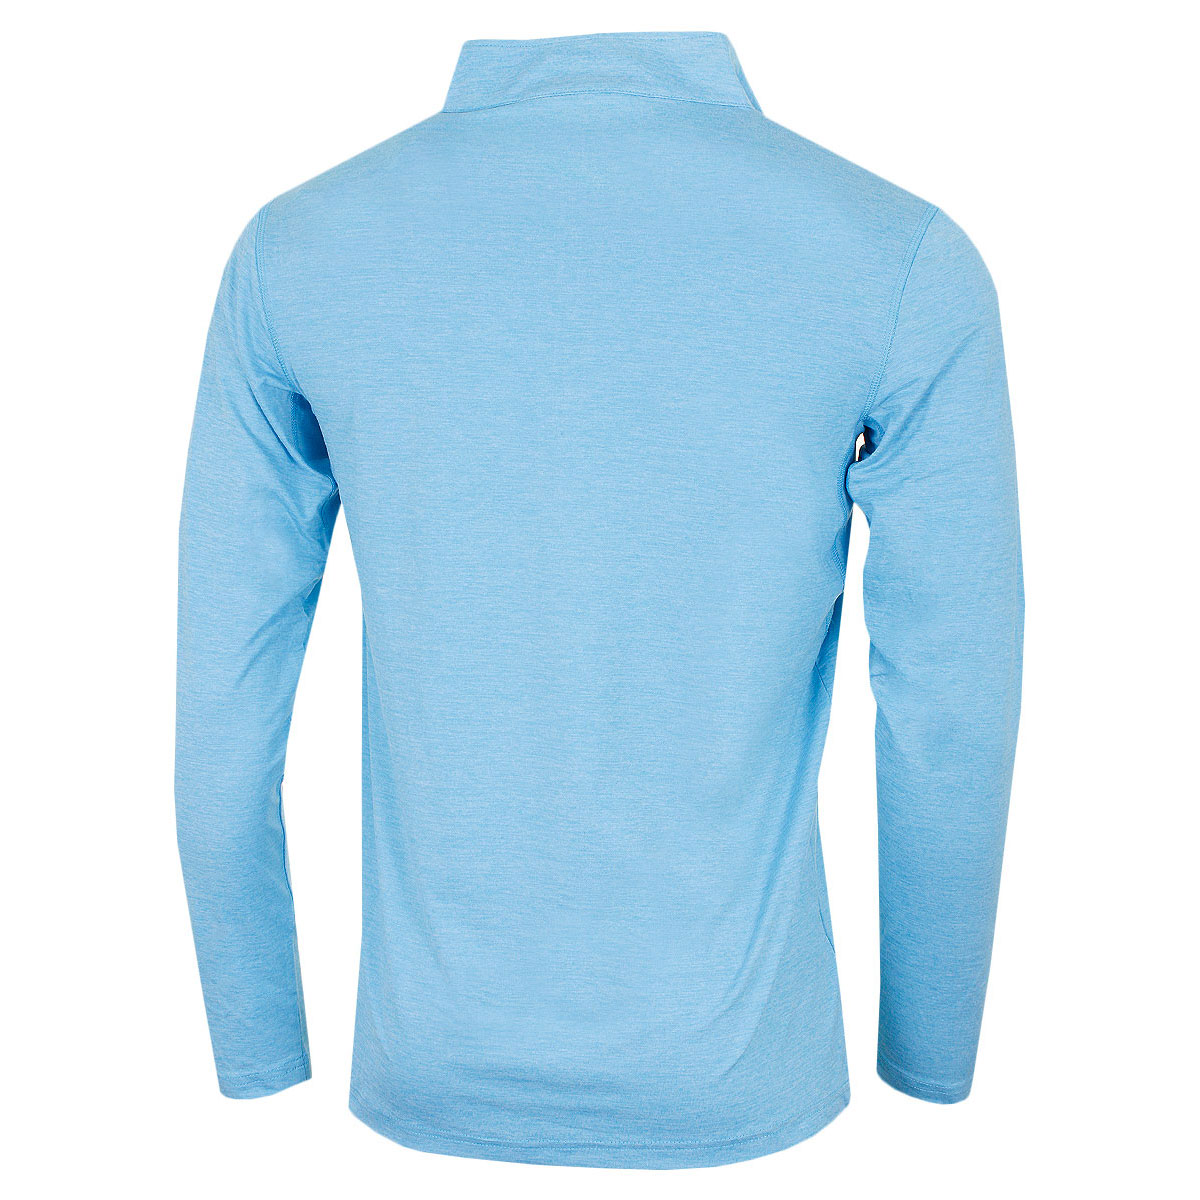 Calvin-Klein-Mens-Newport-HZ-LS-Breathable-Lightweight-Sweater-28-OFF-RRP thumbnail 15